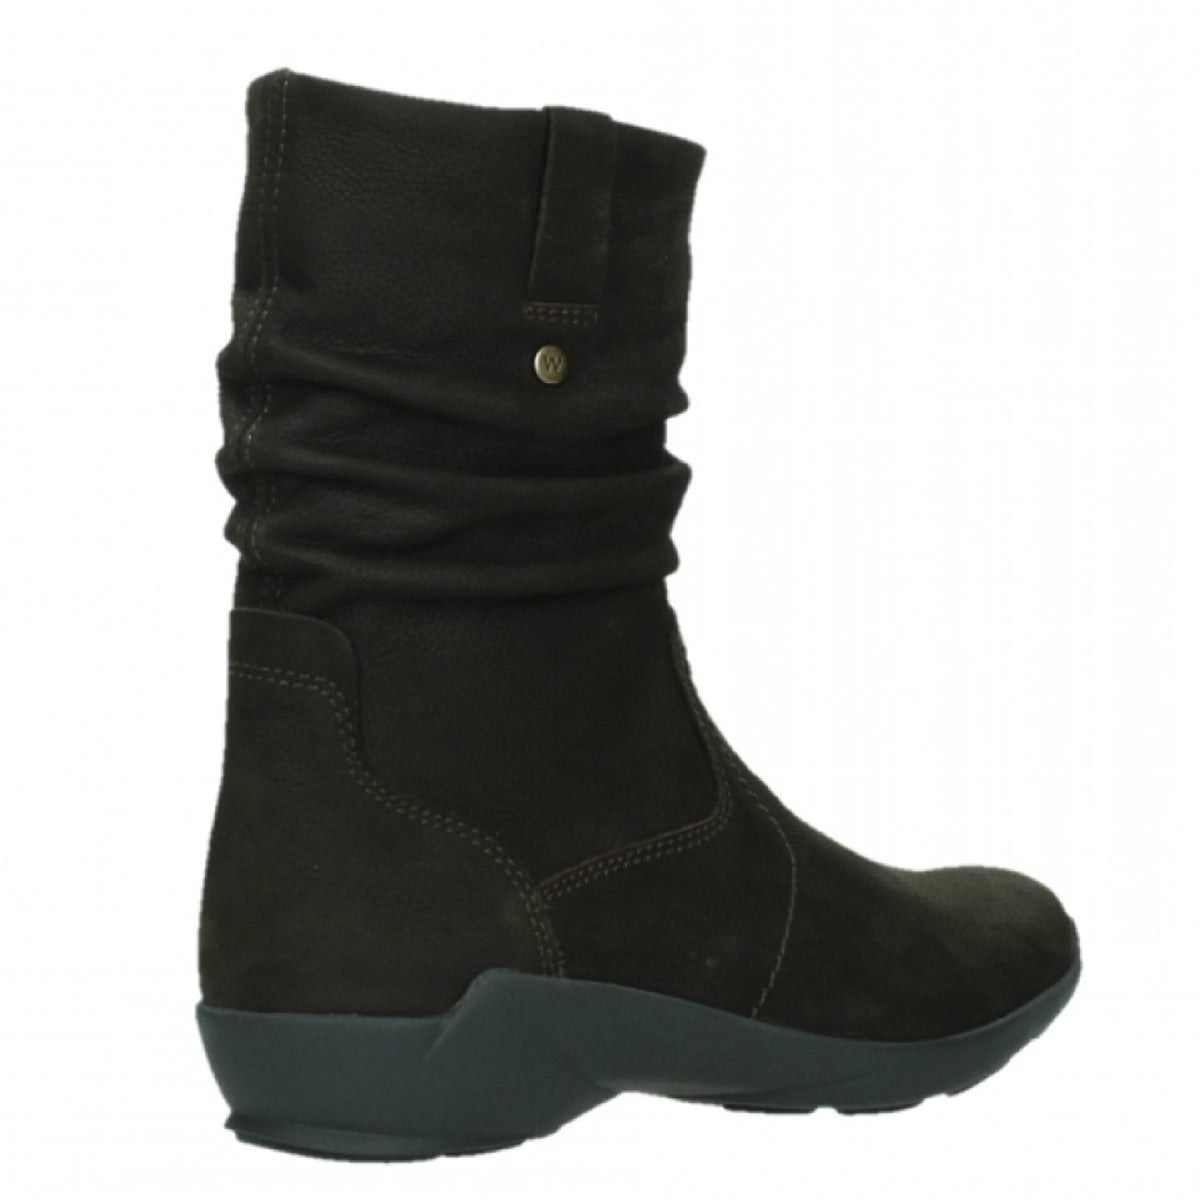 Wolky, Luna WP, Boot, Antique Nubuck, Ladies, Brown Boots Wolky